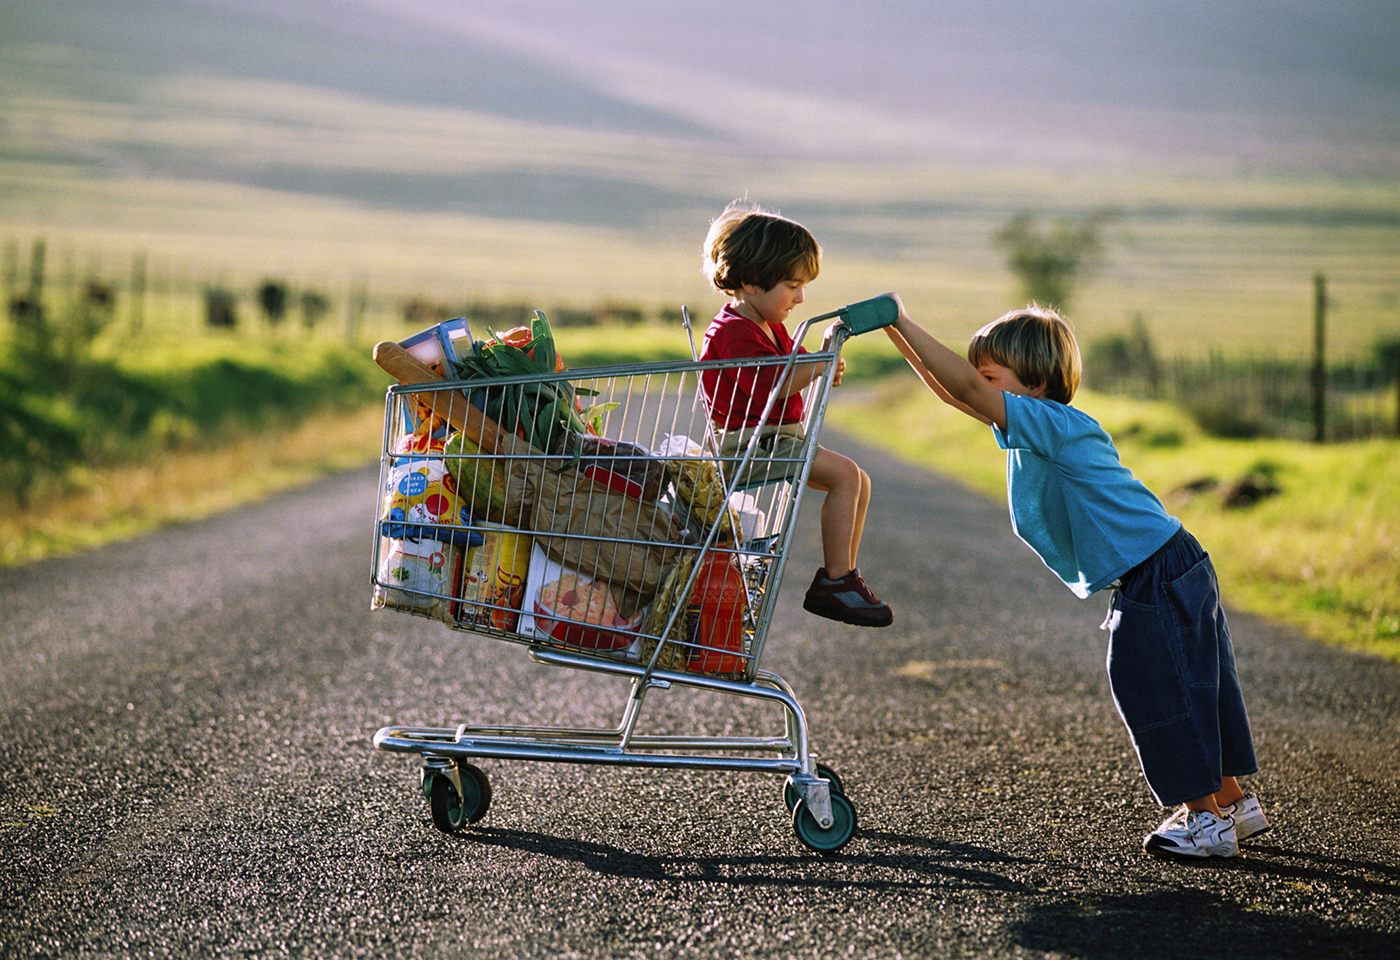 Two kids pushing a shopping trolley